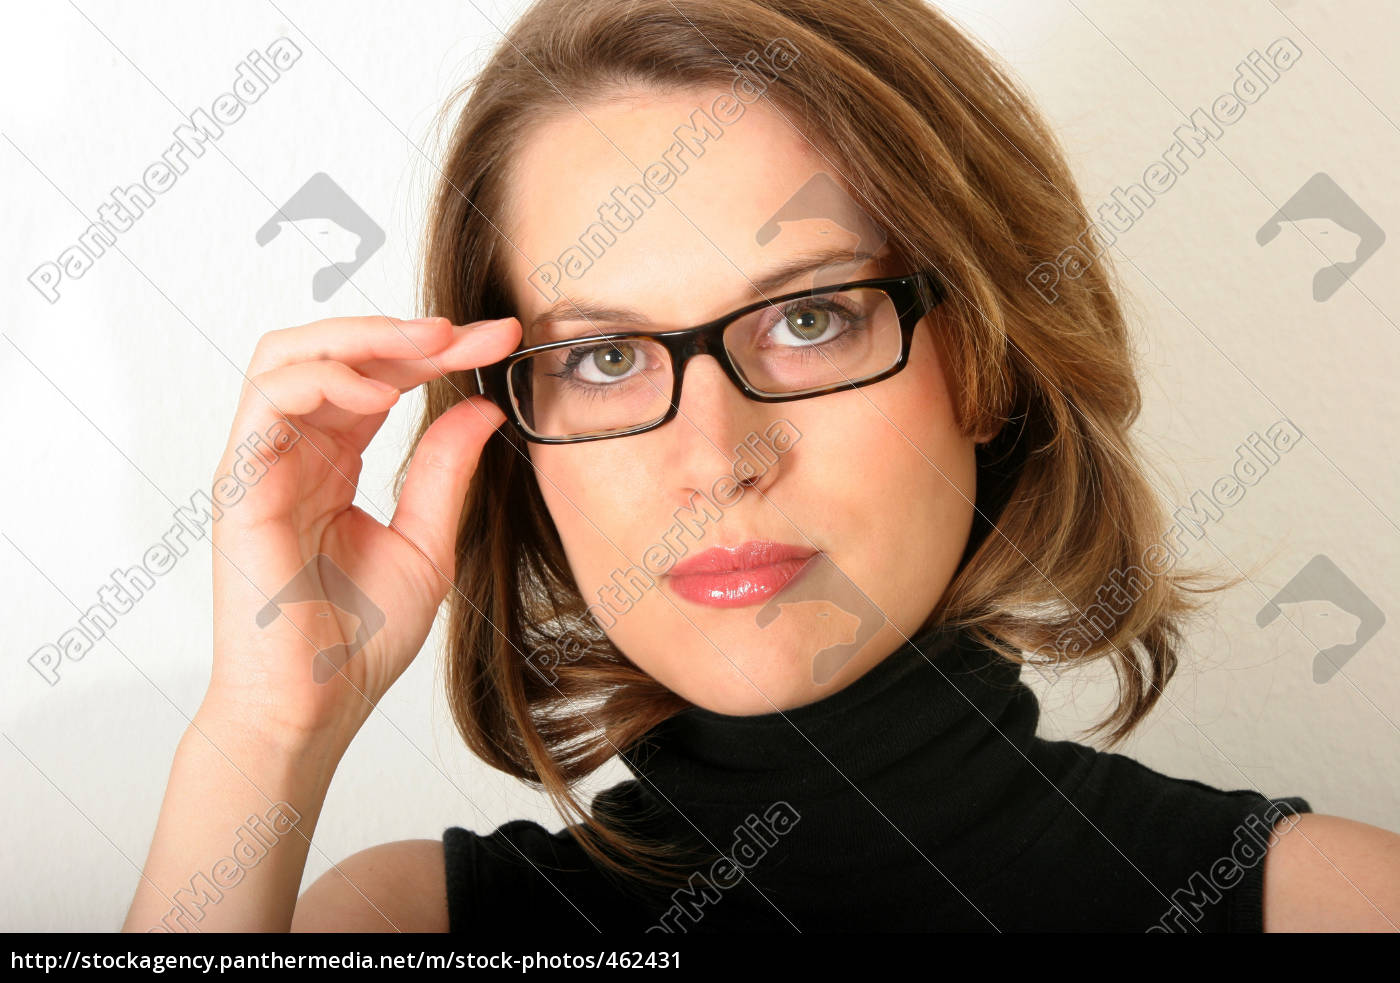 woman, with, glasses - 462431